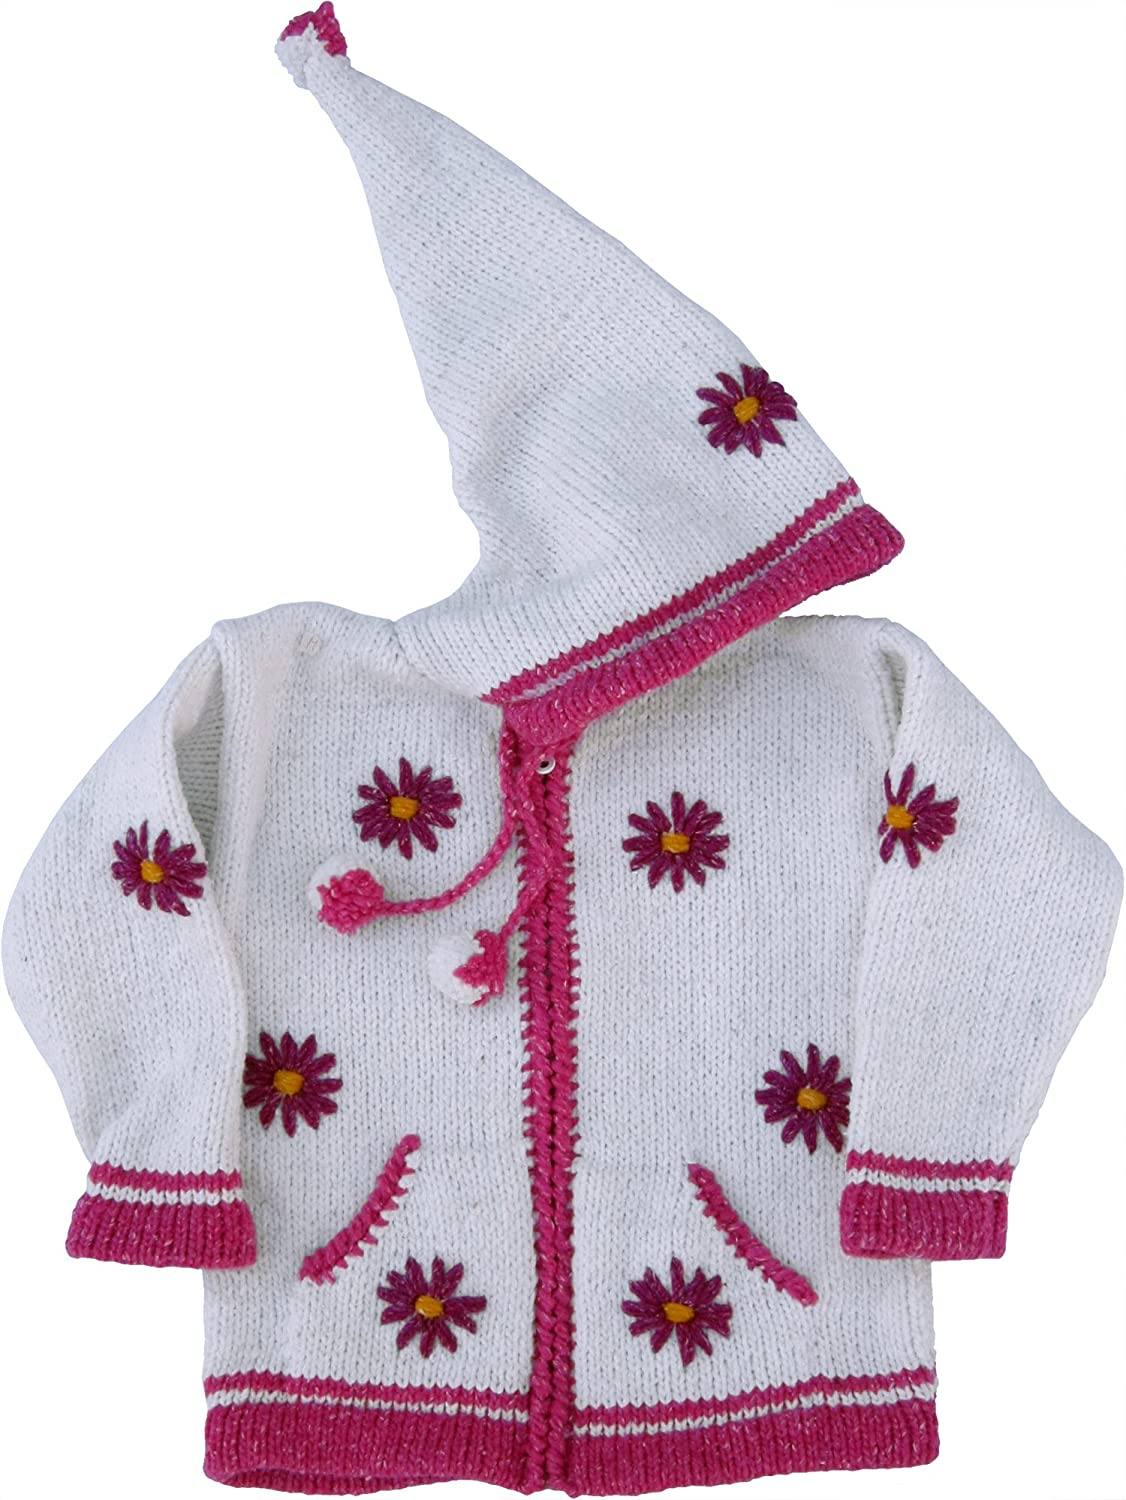 White Flowered Childs Sweater with Pointy Hood Infant Size